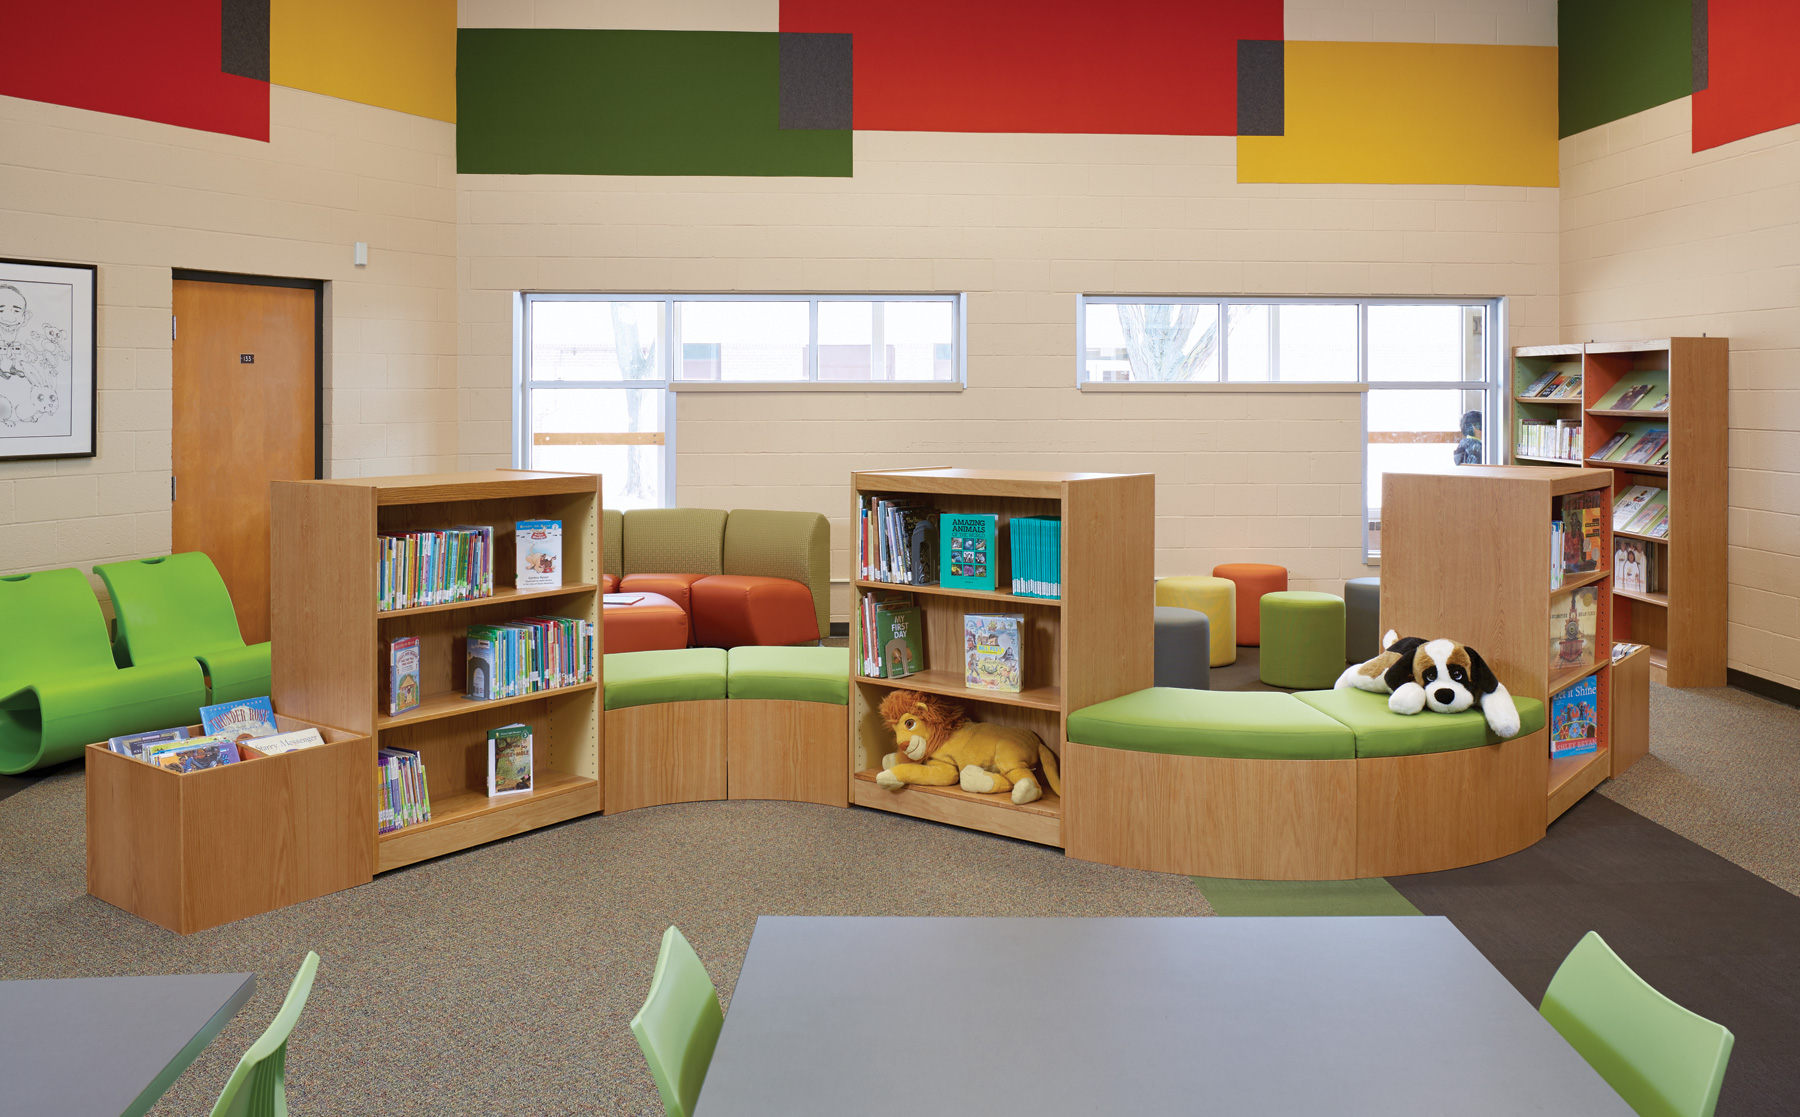 Library decorating ideas abraham lincoln elementary school for Interior design and decorating schools in lagos